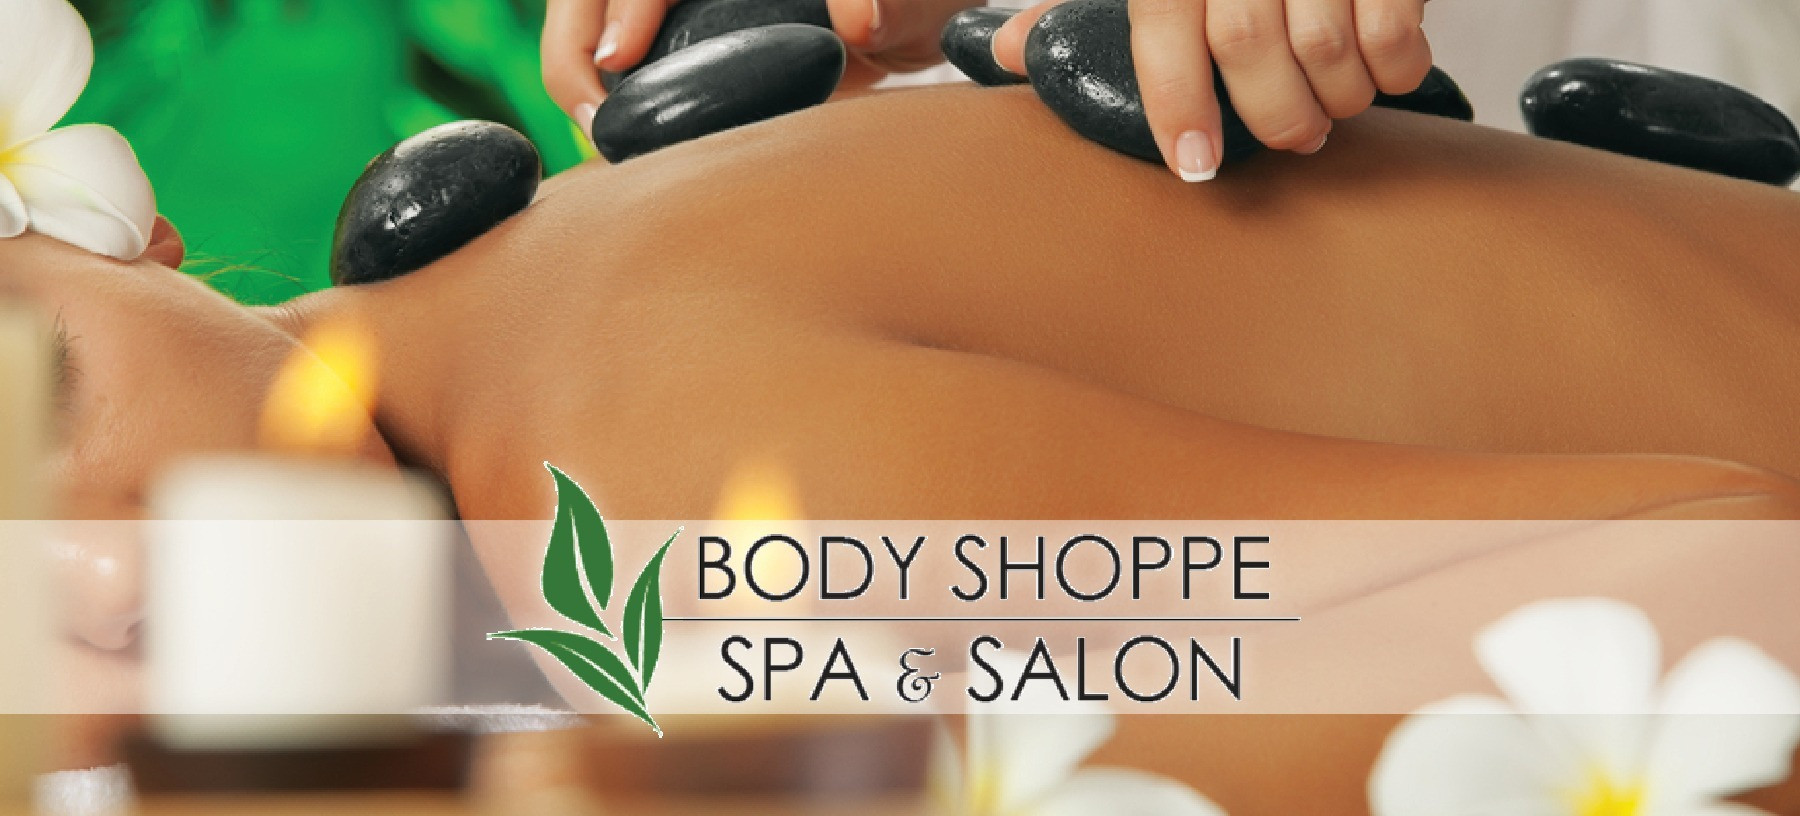 Salon Massage Body Body Service Menu Body Shoppe Spa Salon Yorktown Va